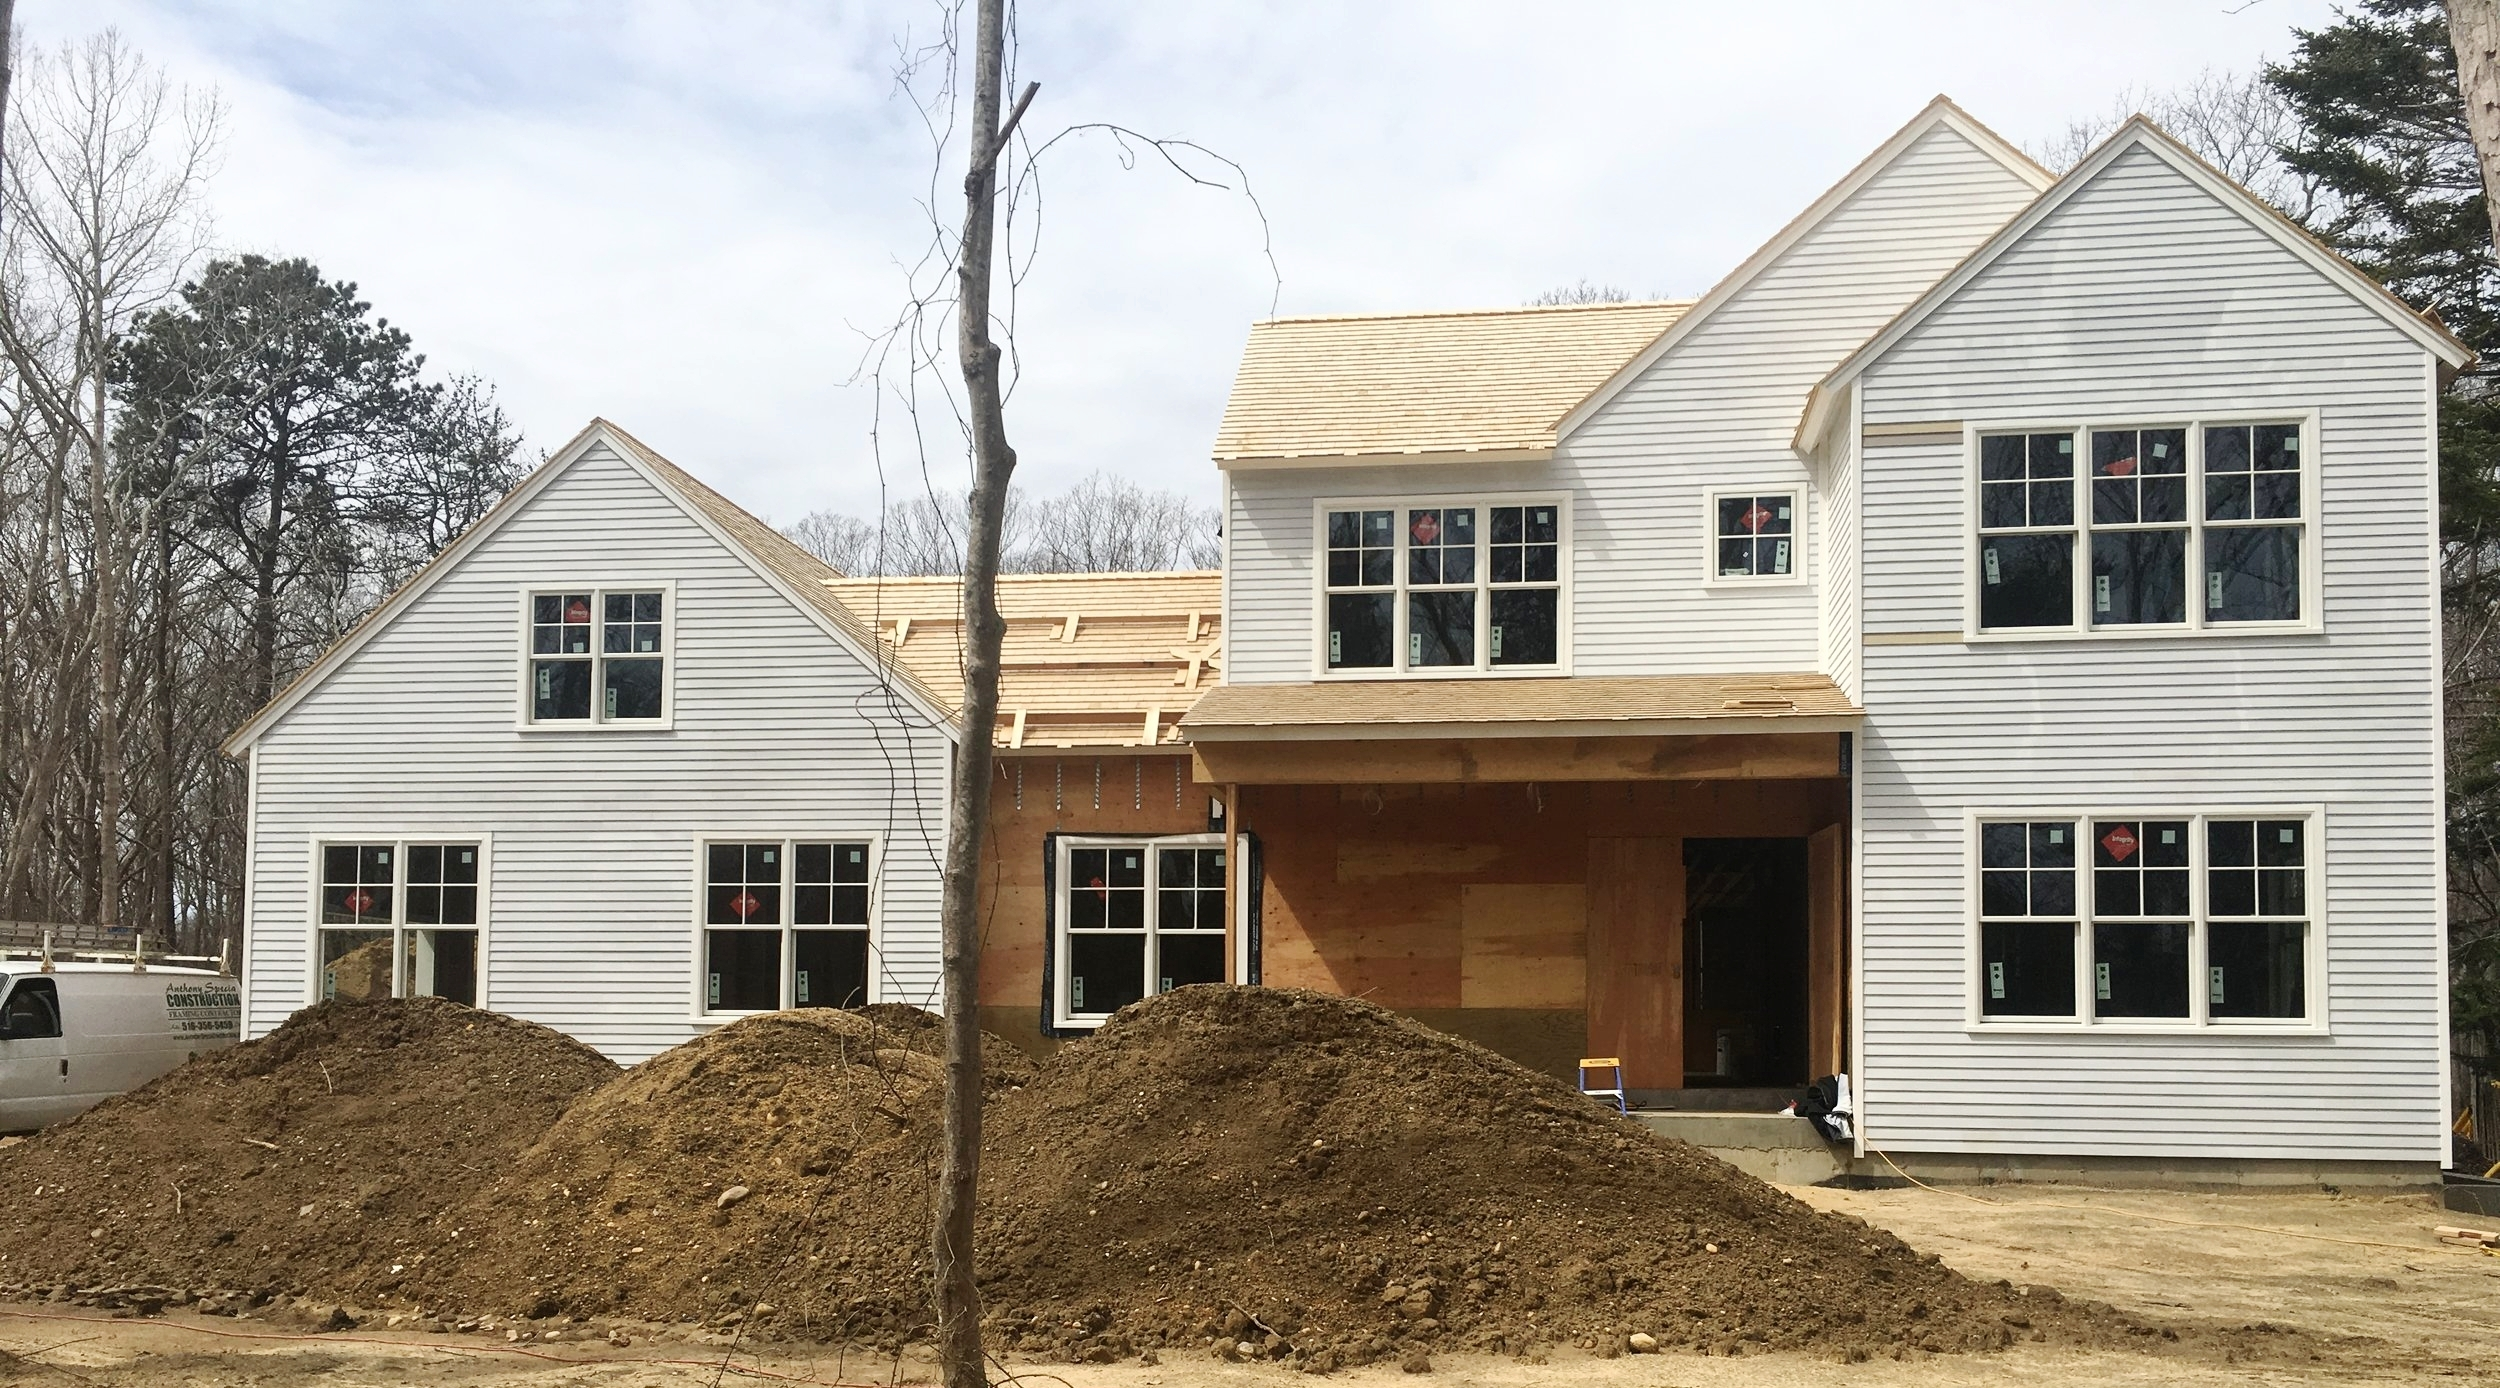 JTA designed single family residence in East Hampton, NY. Seeing lots of progress within a few weeks.